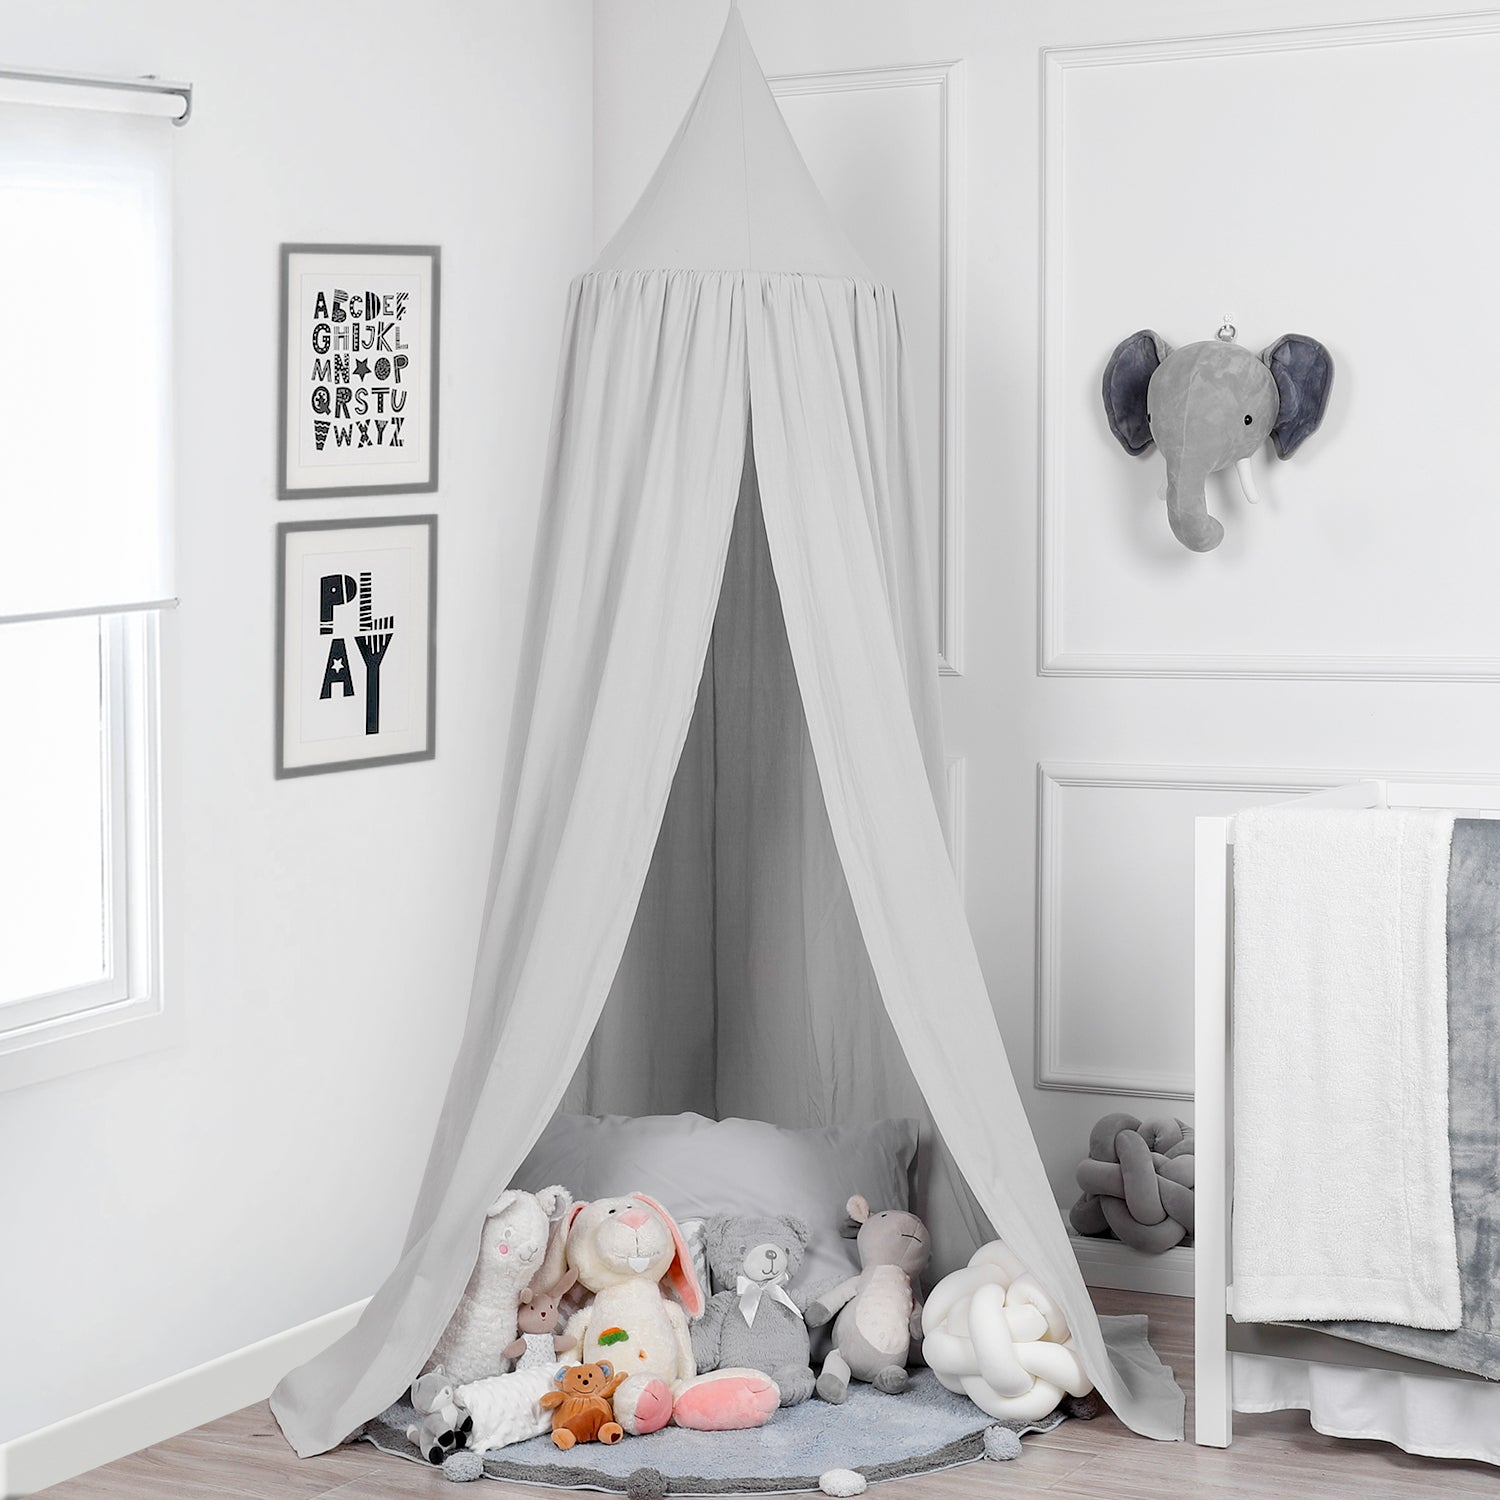 Baby Bed Canopy with Pompoms, 100% Cotton Canopy for Crib and Toddler Bed - 3 Color